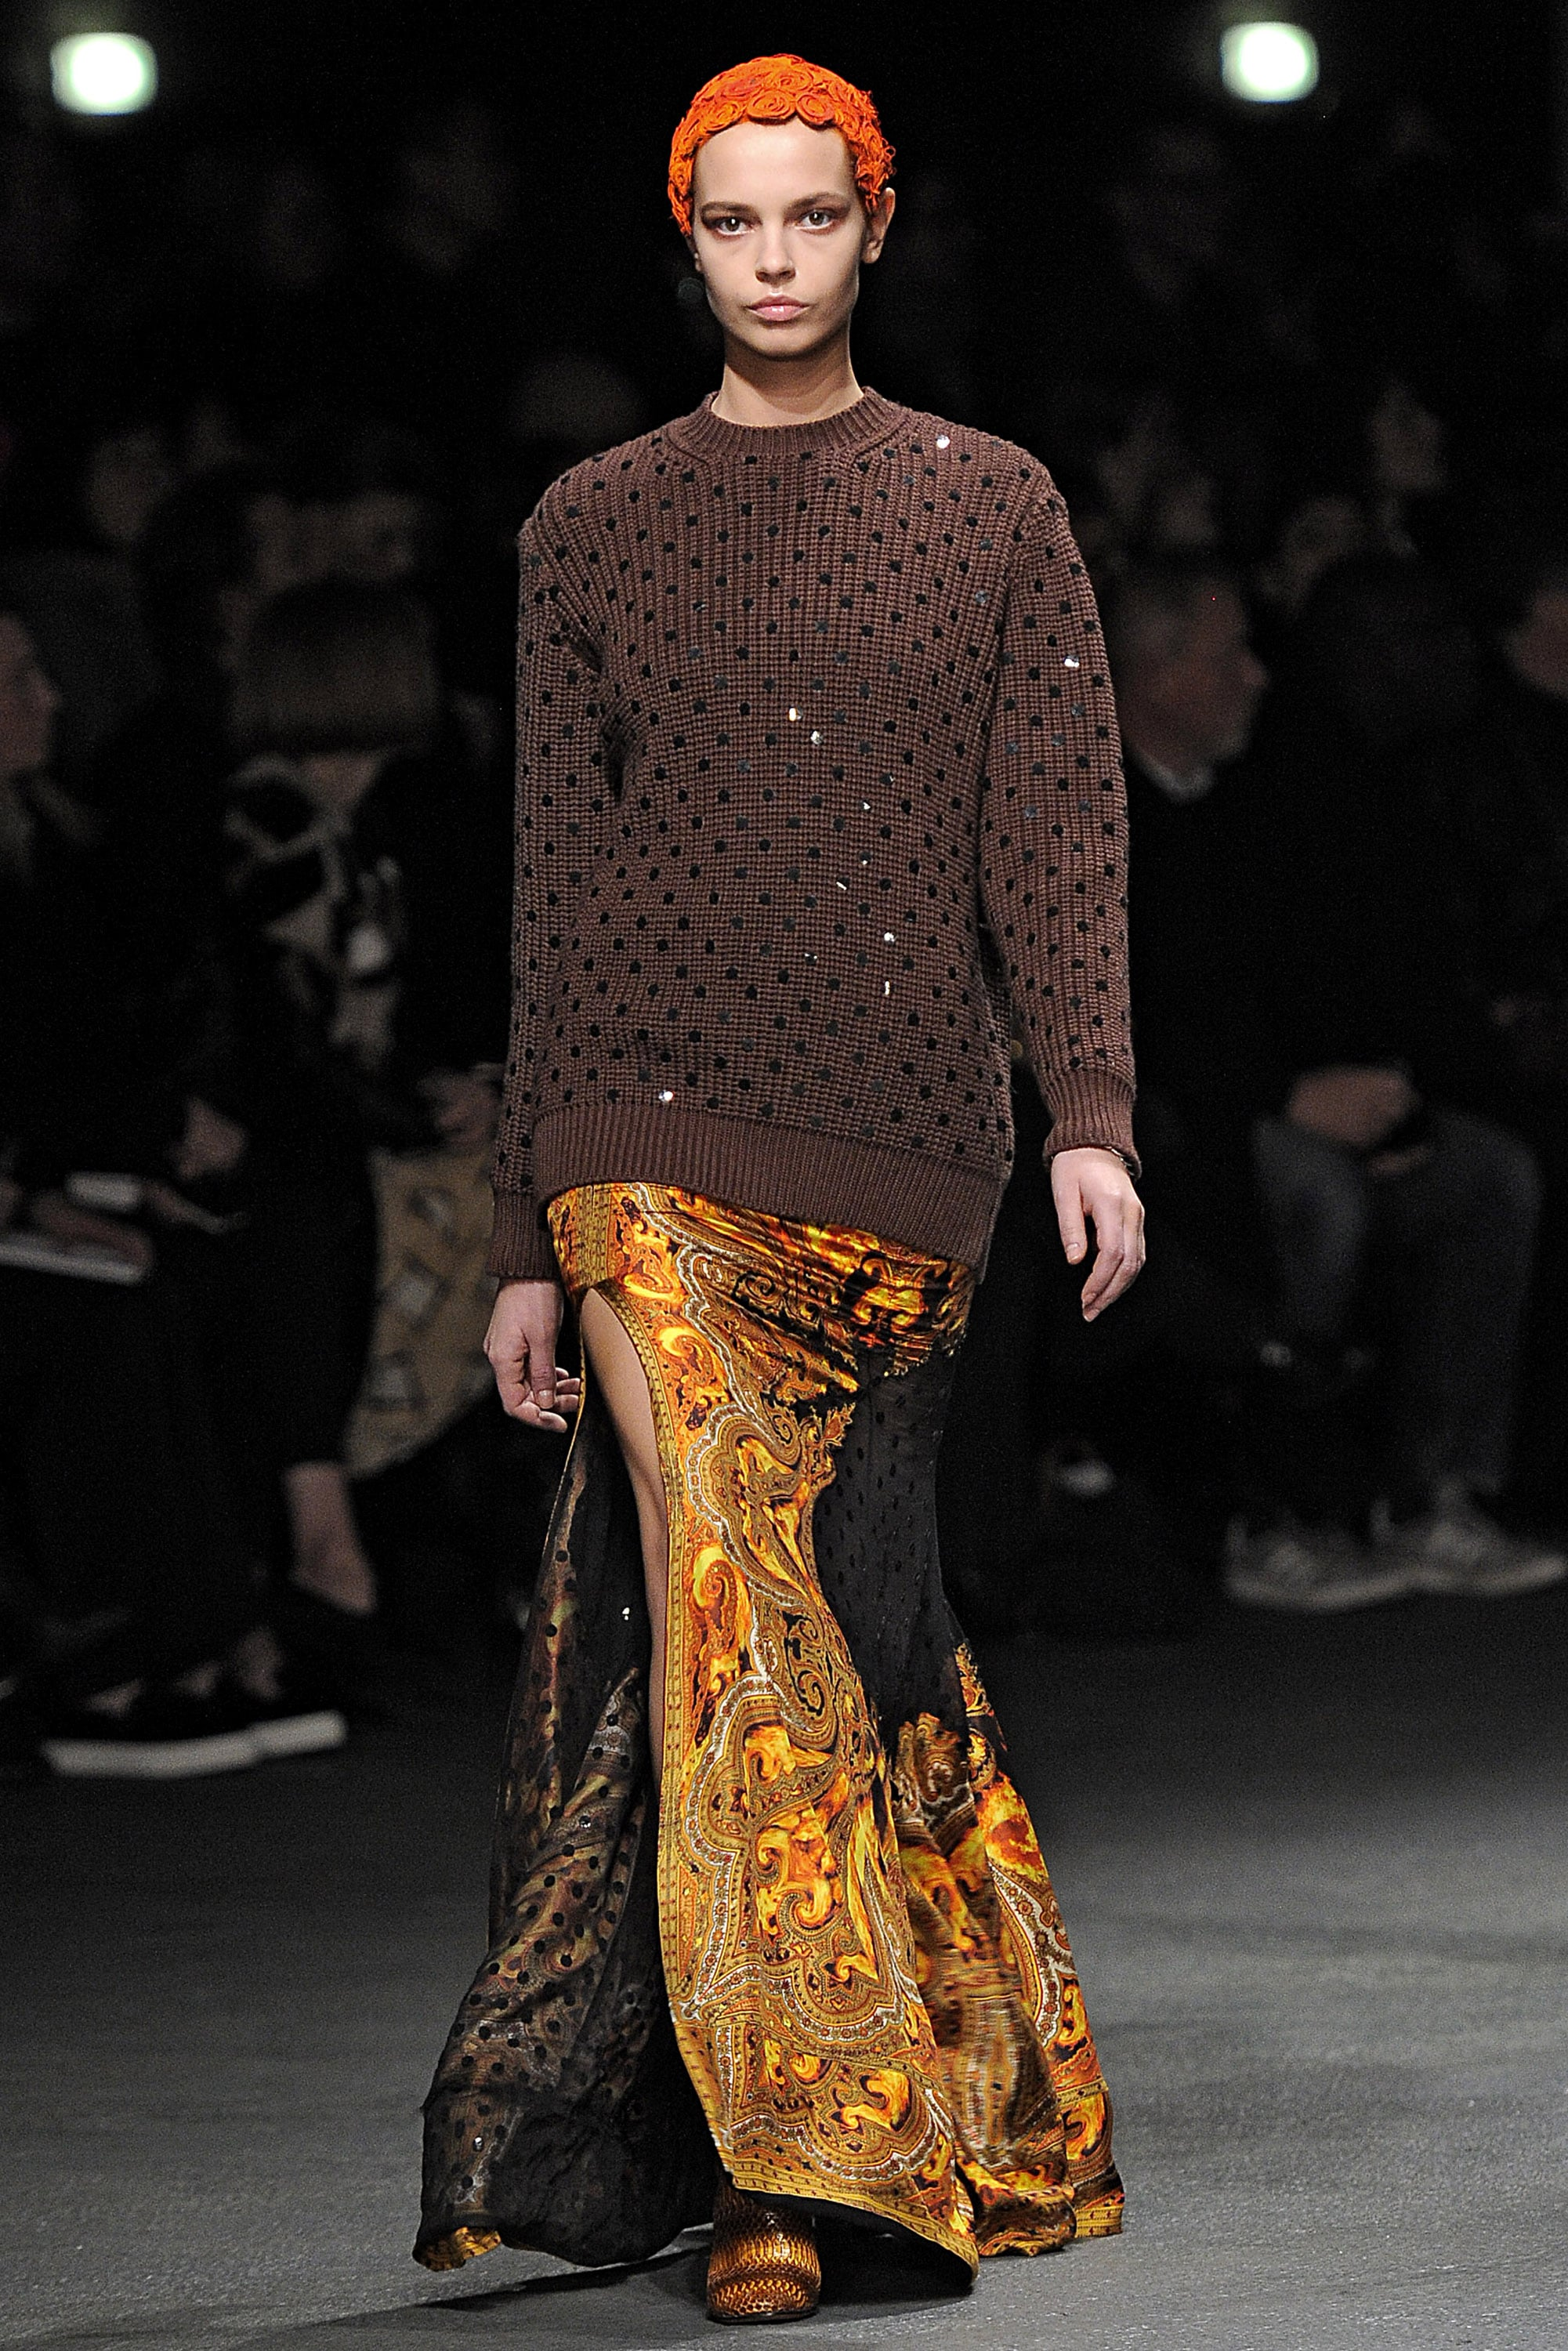 The Trend: Embellished Sweaters